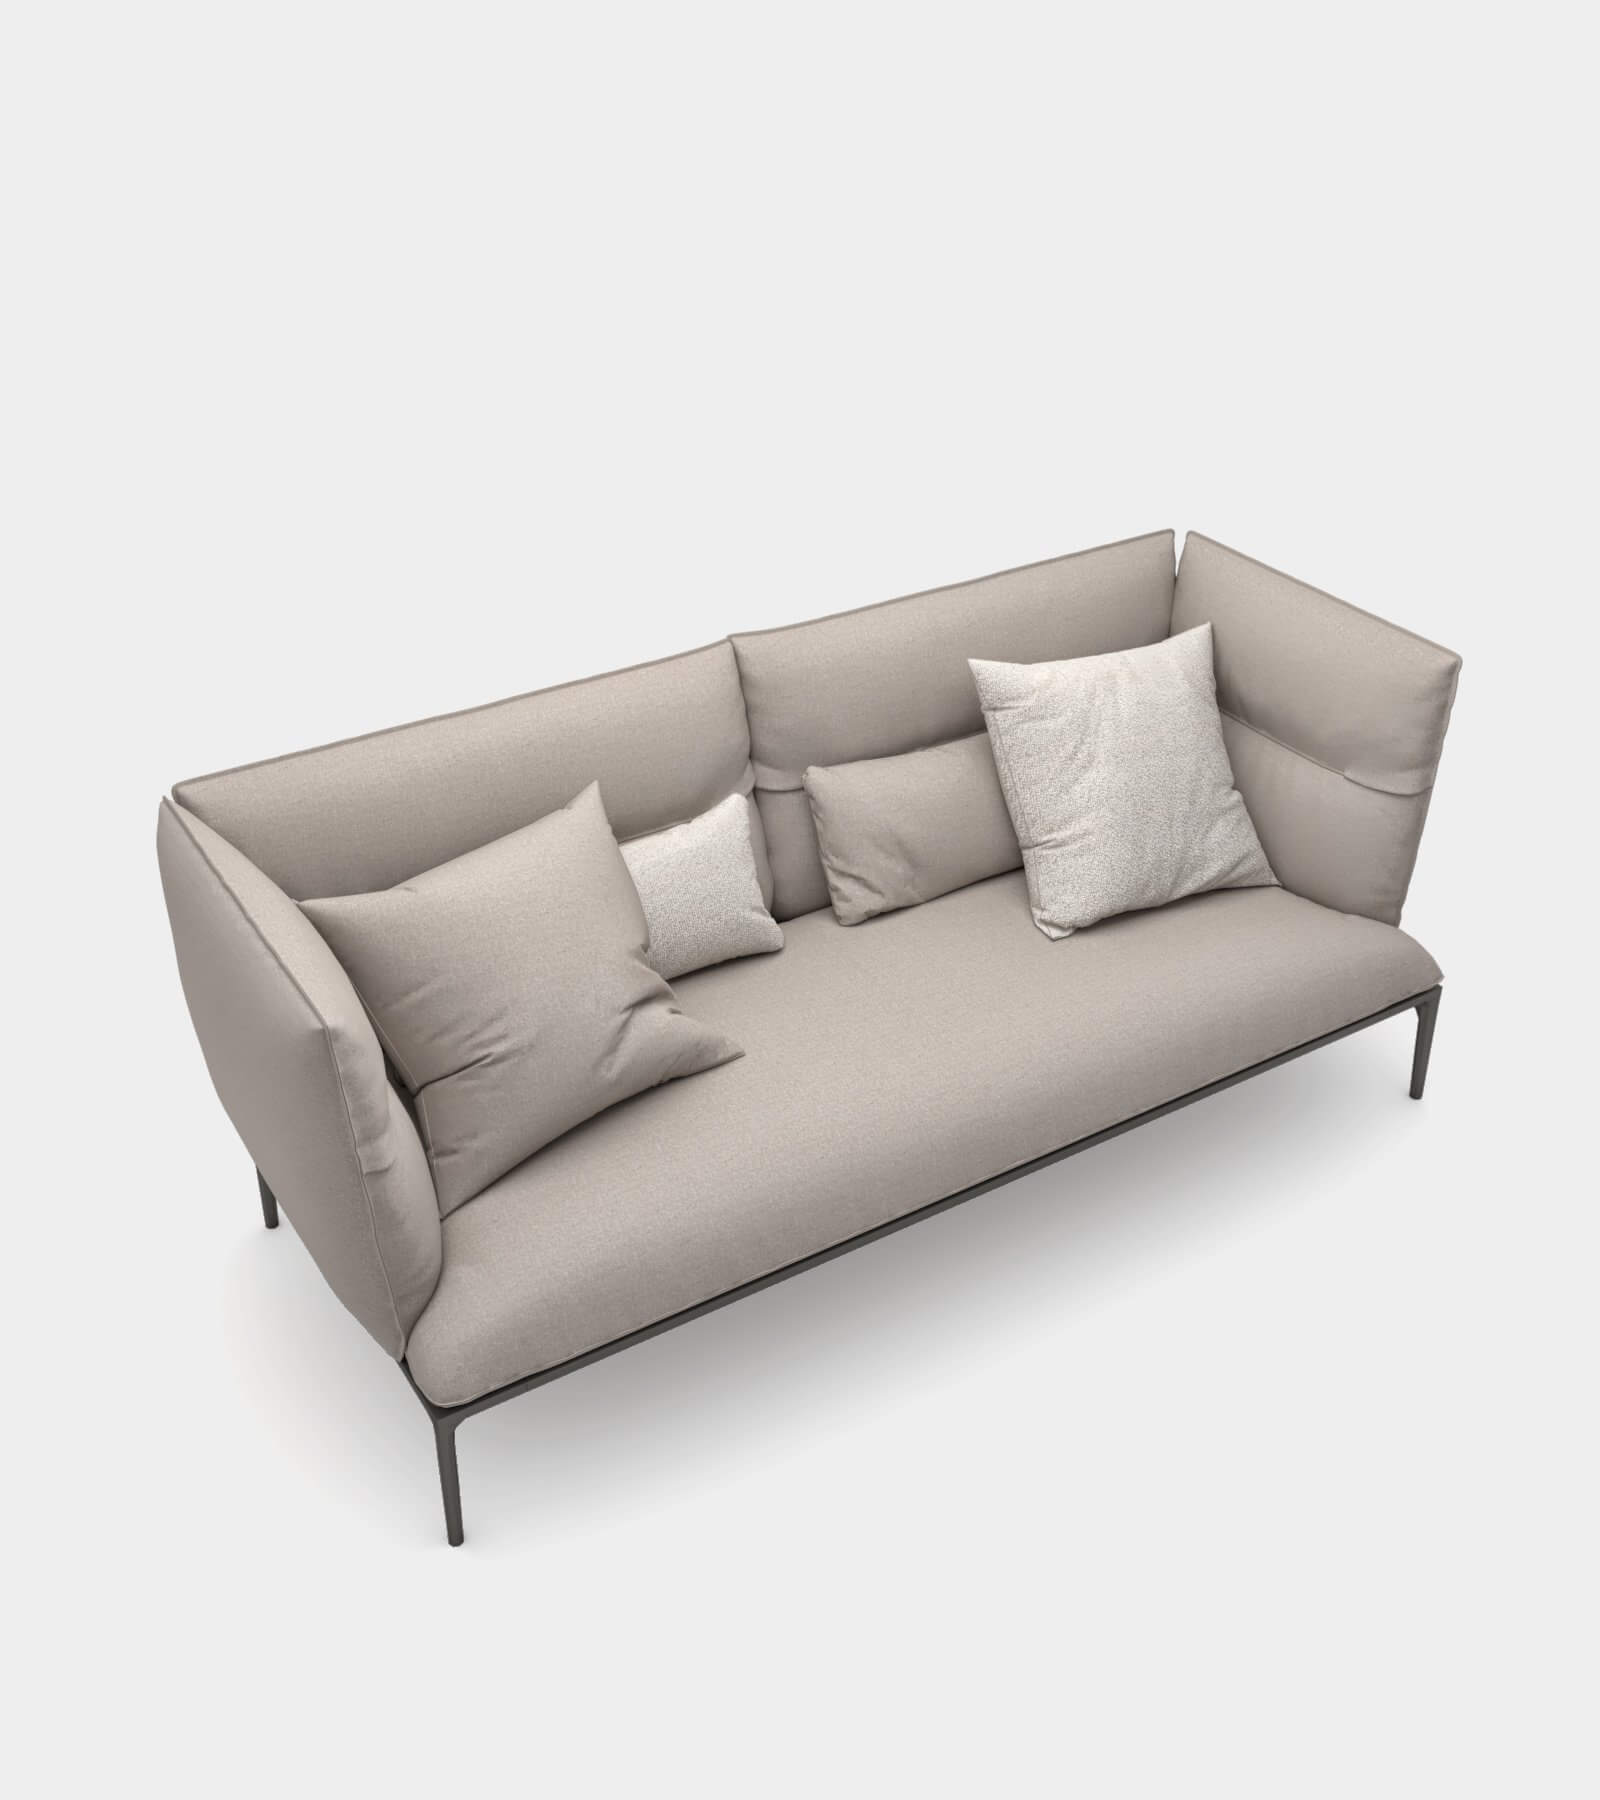 Sofa with high backrest-21 3D Model